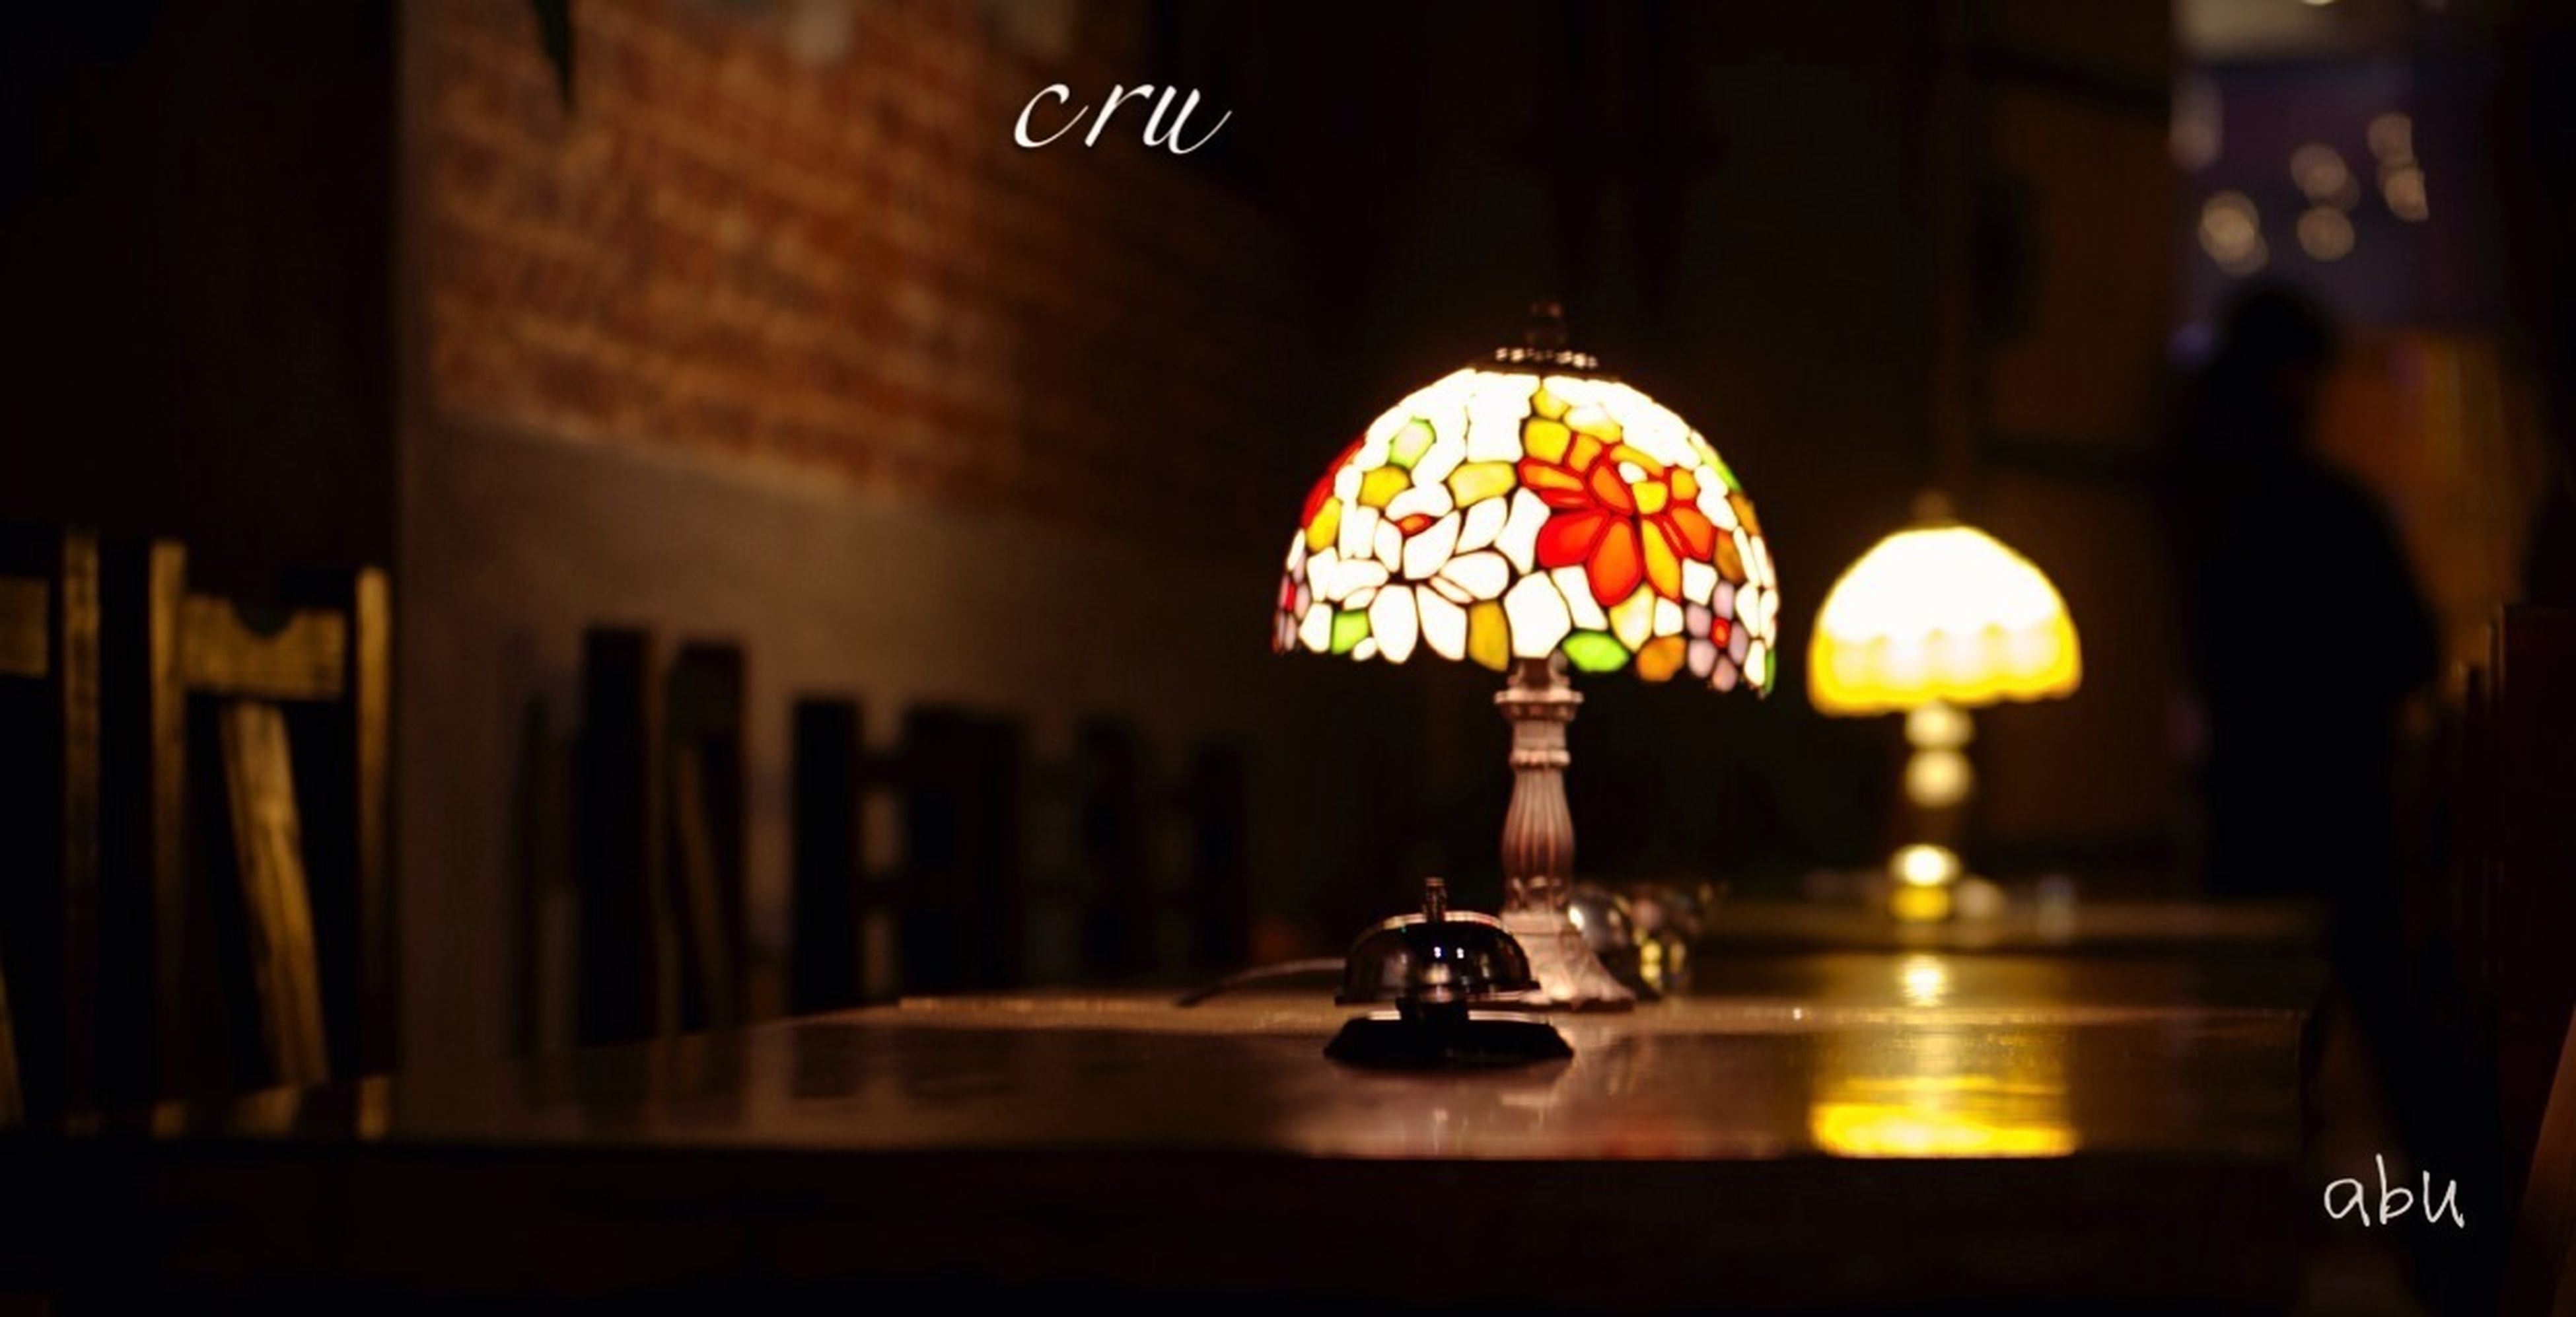 indoors, illuminated, focus on foreground, table, close-up, glass - material, hanging, selective focus, decoration, still life, lighting equipment, religion, no people, reflection, transparent, spirituality, art and craft, home interior, candle